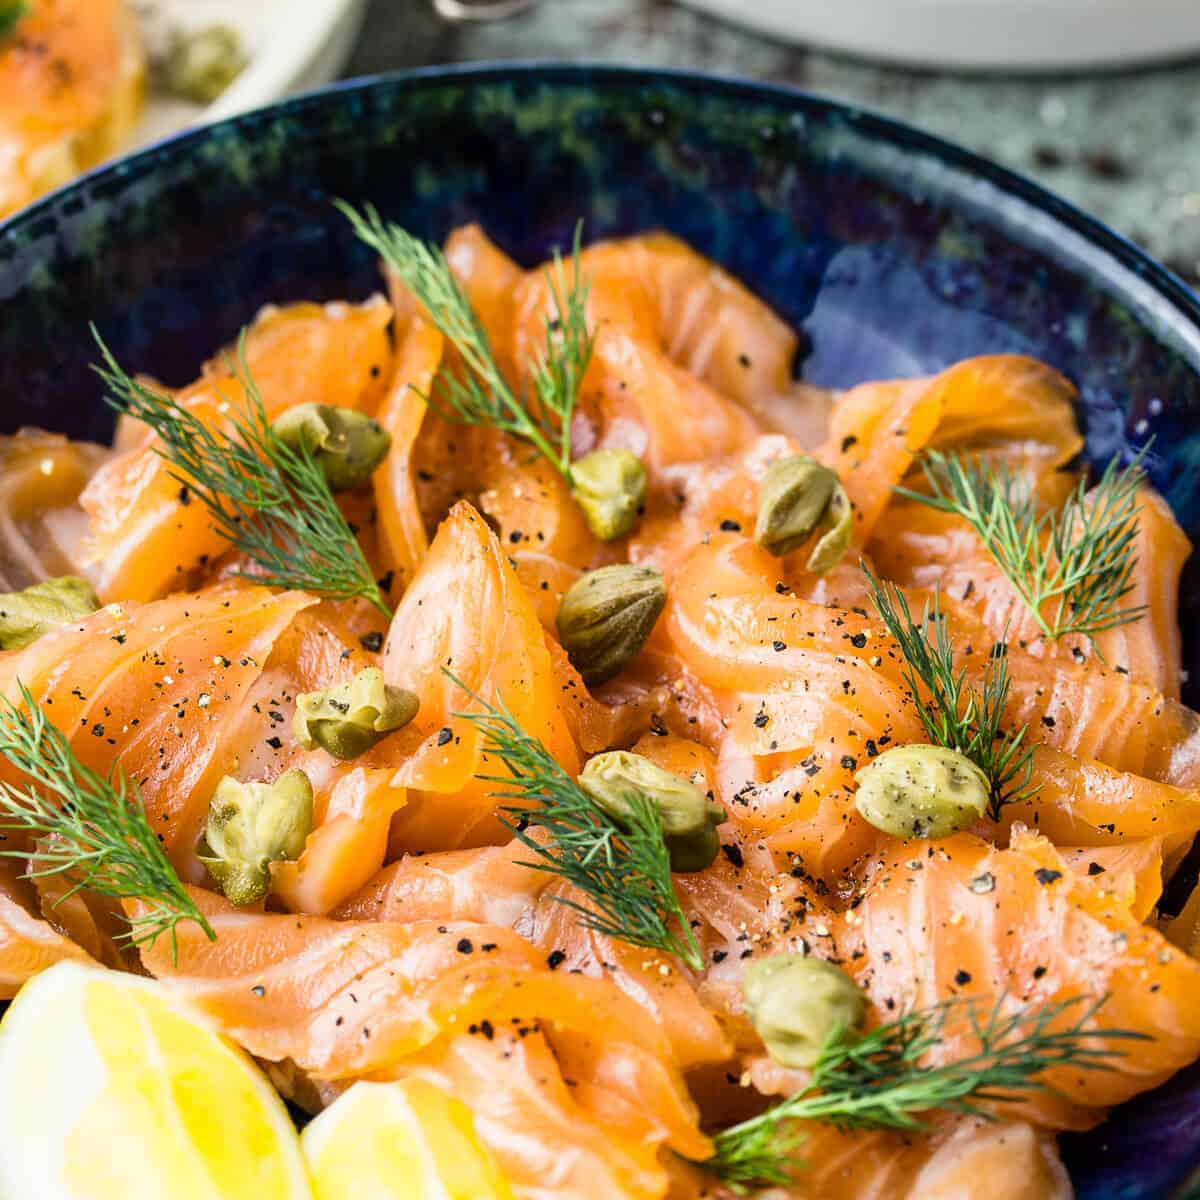 sliced cured salmon gravlax with dill and capers